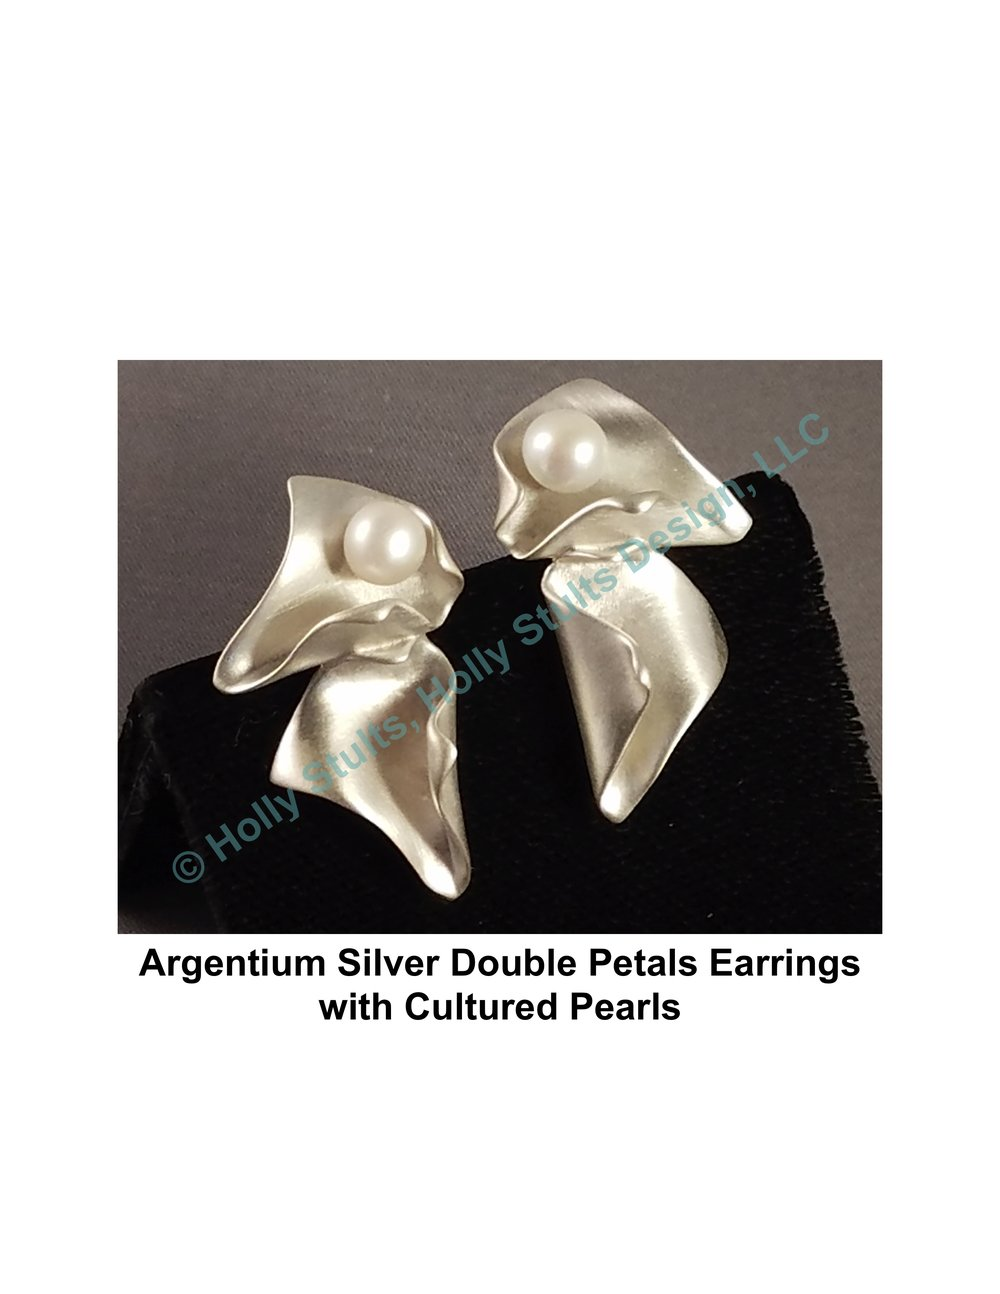 Argentium Silver Double Petals Earrings with Cultured Pearls.jpg